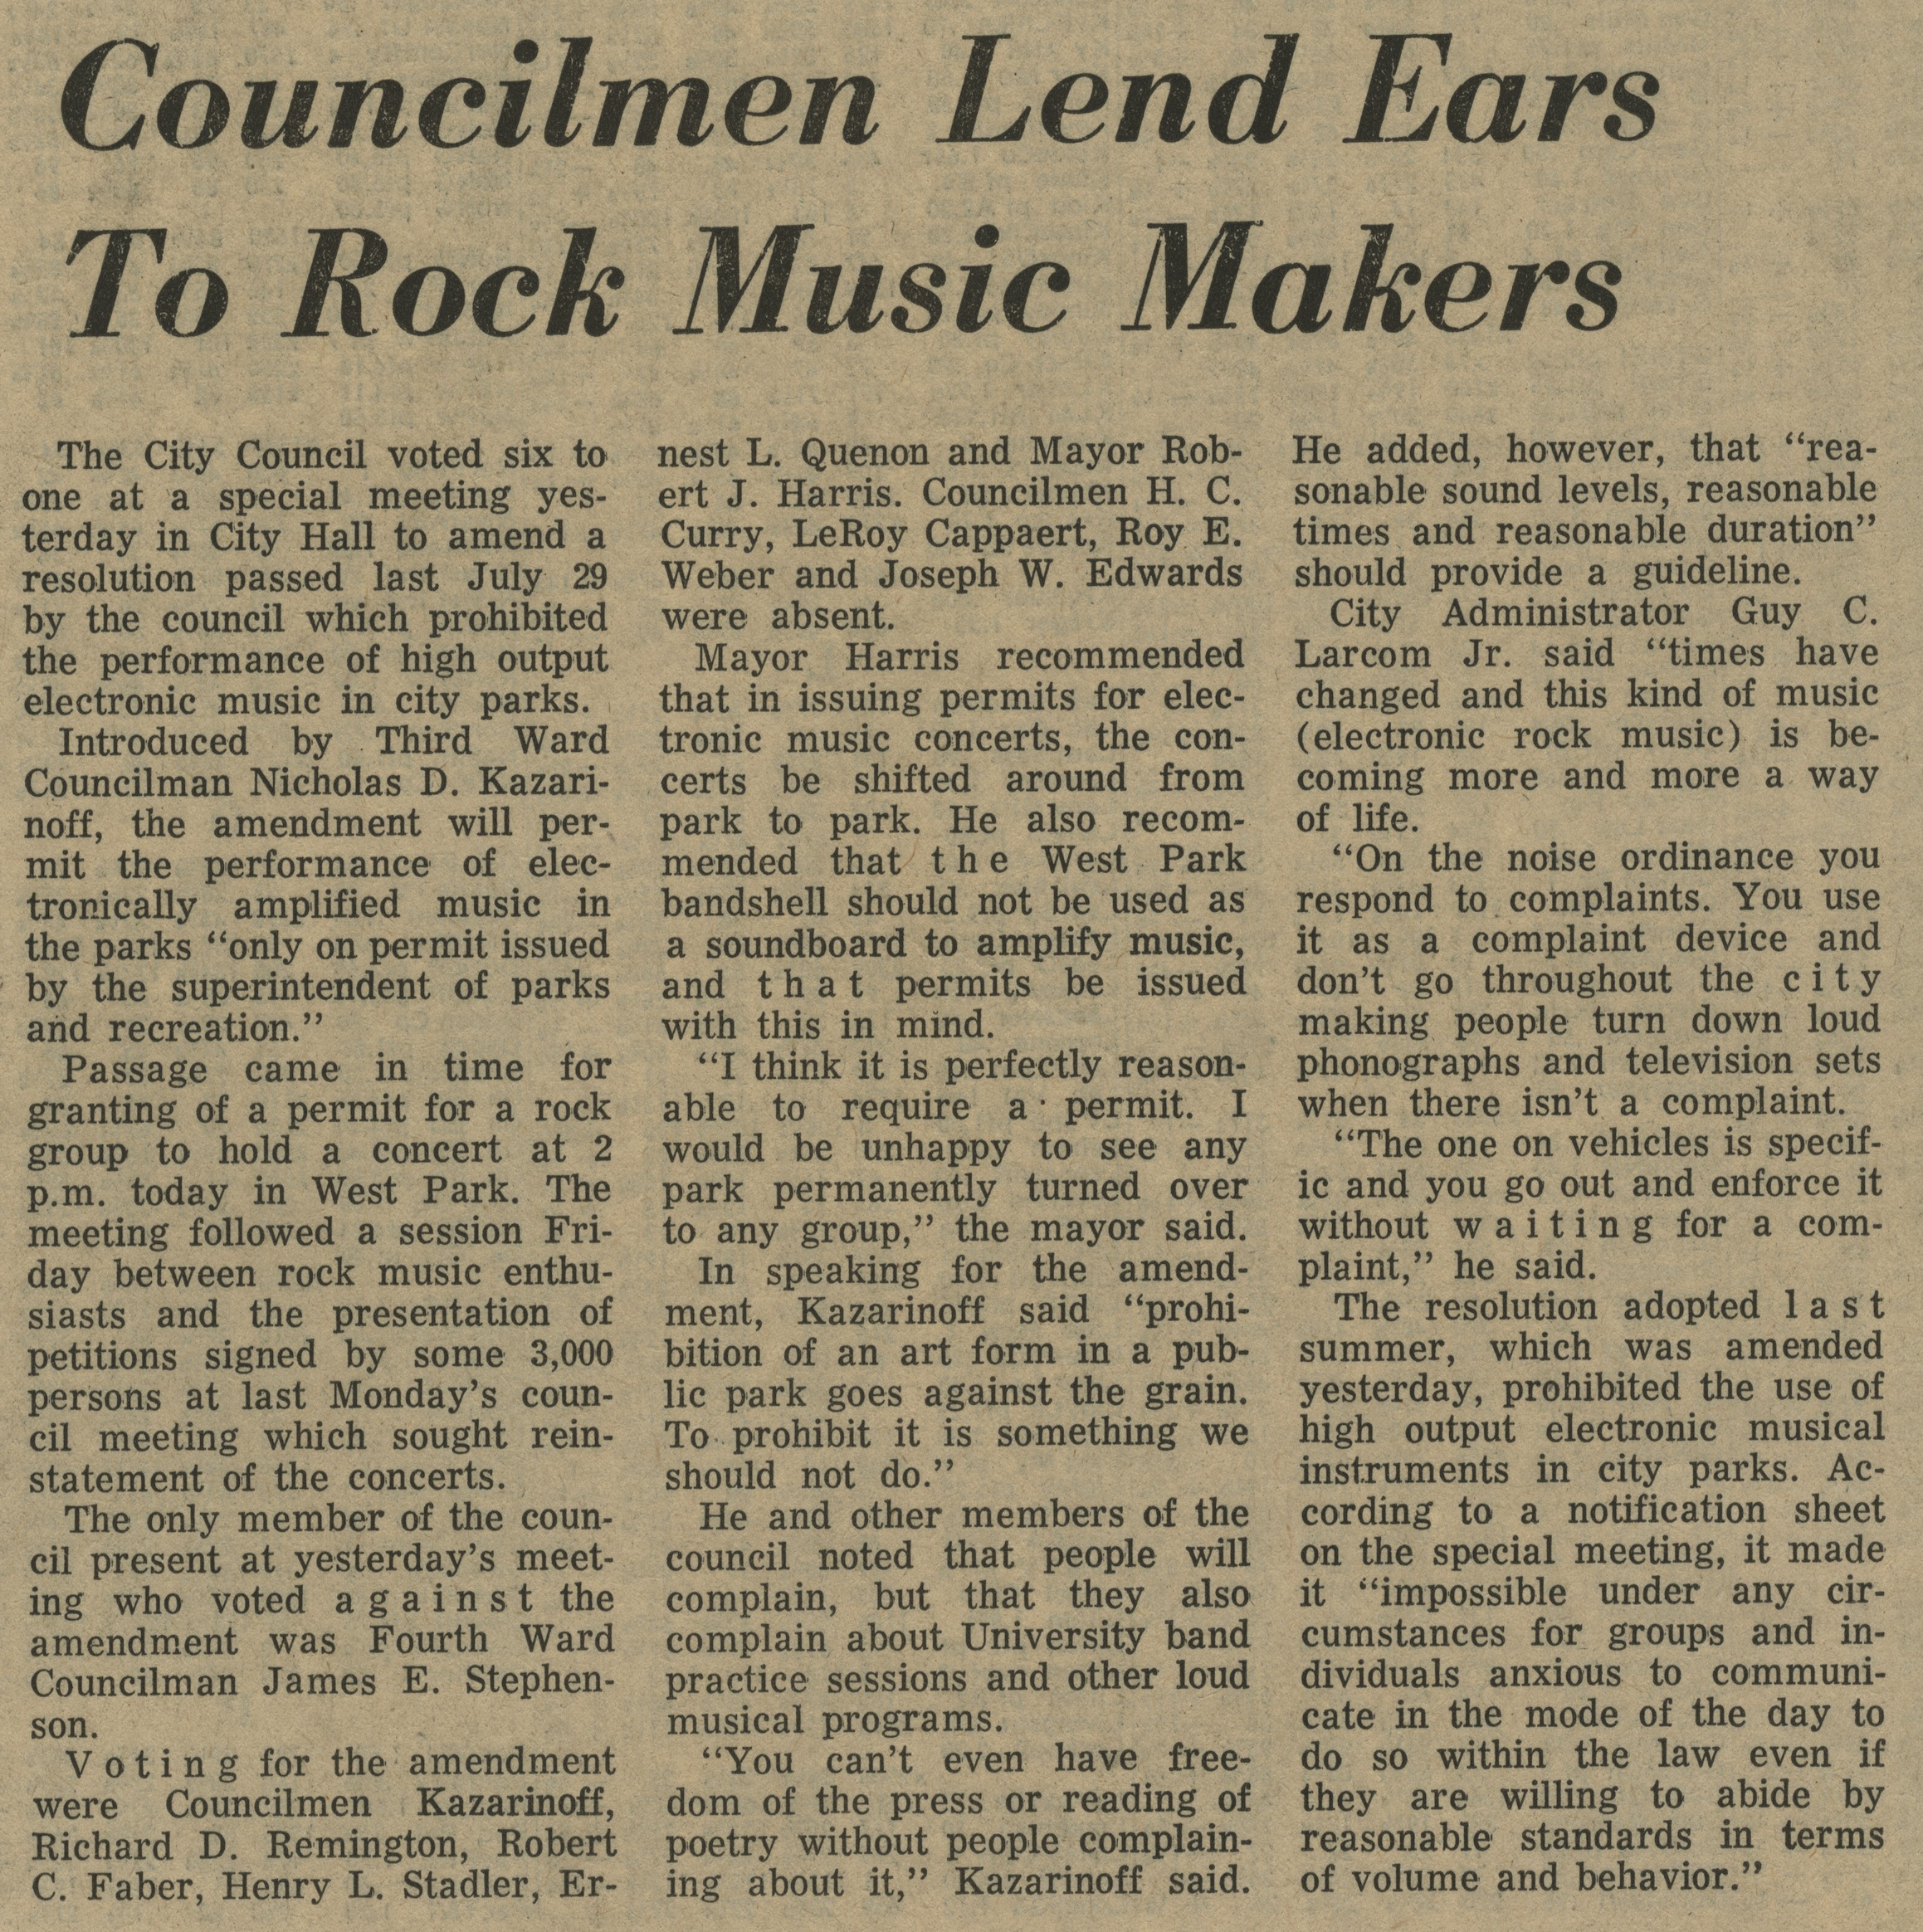 Councilmen Lend Ears To Rock Music Makers image